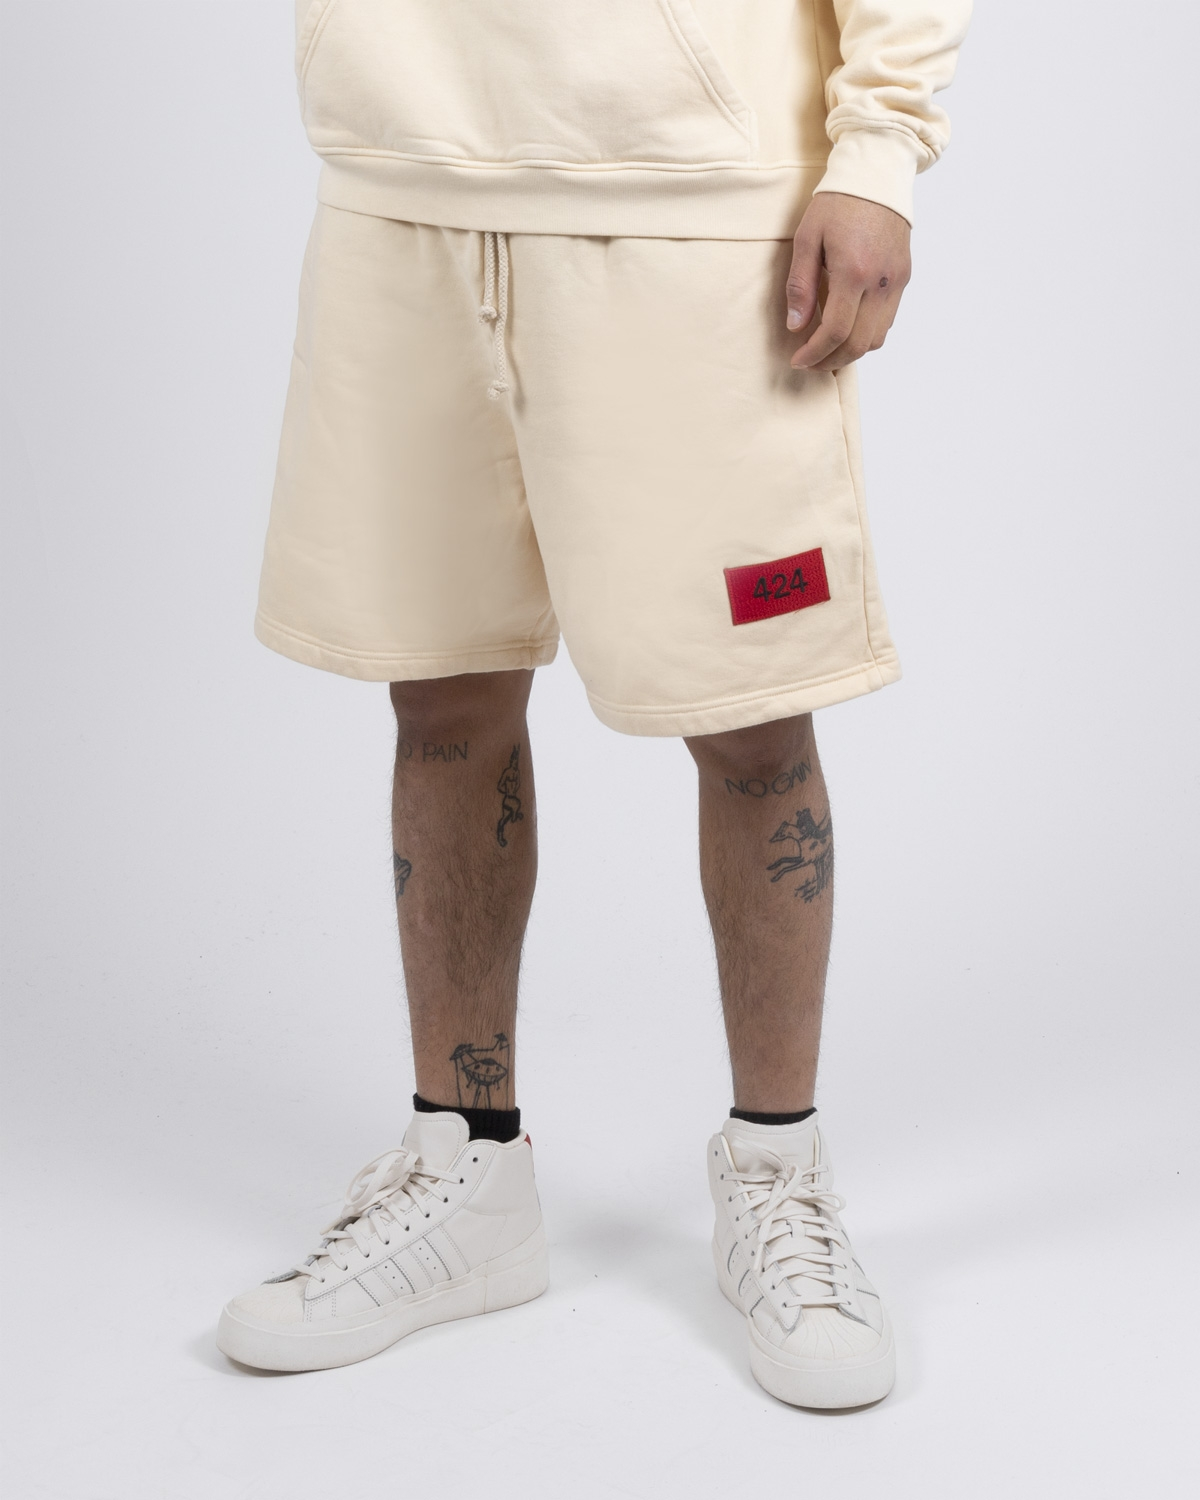 424 CREAM LOGO SWEATSHORTS